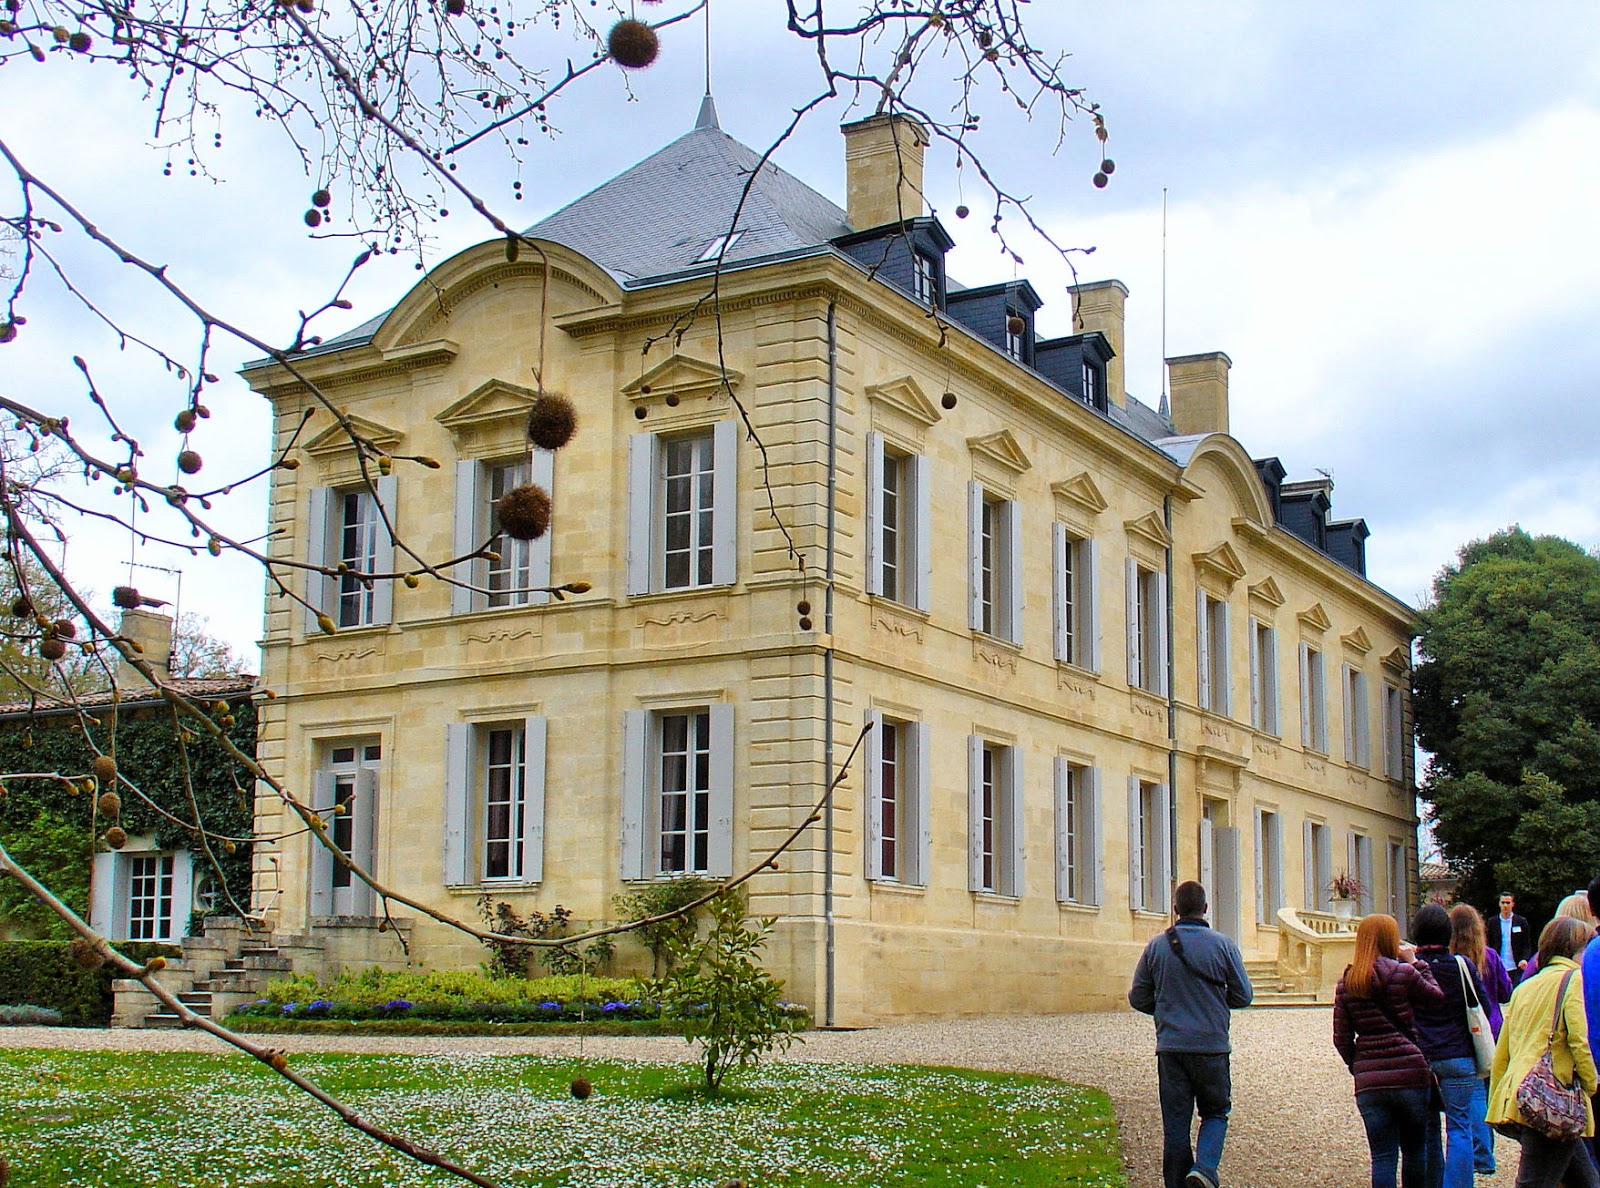 Elegance and opulence come to mind when admiring the early 19th-century Chateau Siaurac located in the Pomerol appellation on the right bank. Currently the chateau is undergoing a major renovation to restore its grandeur!